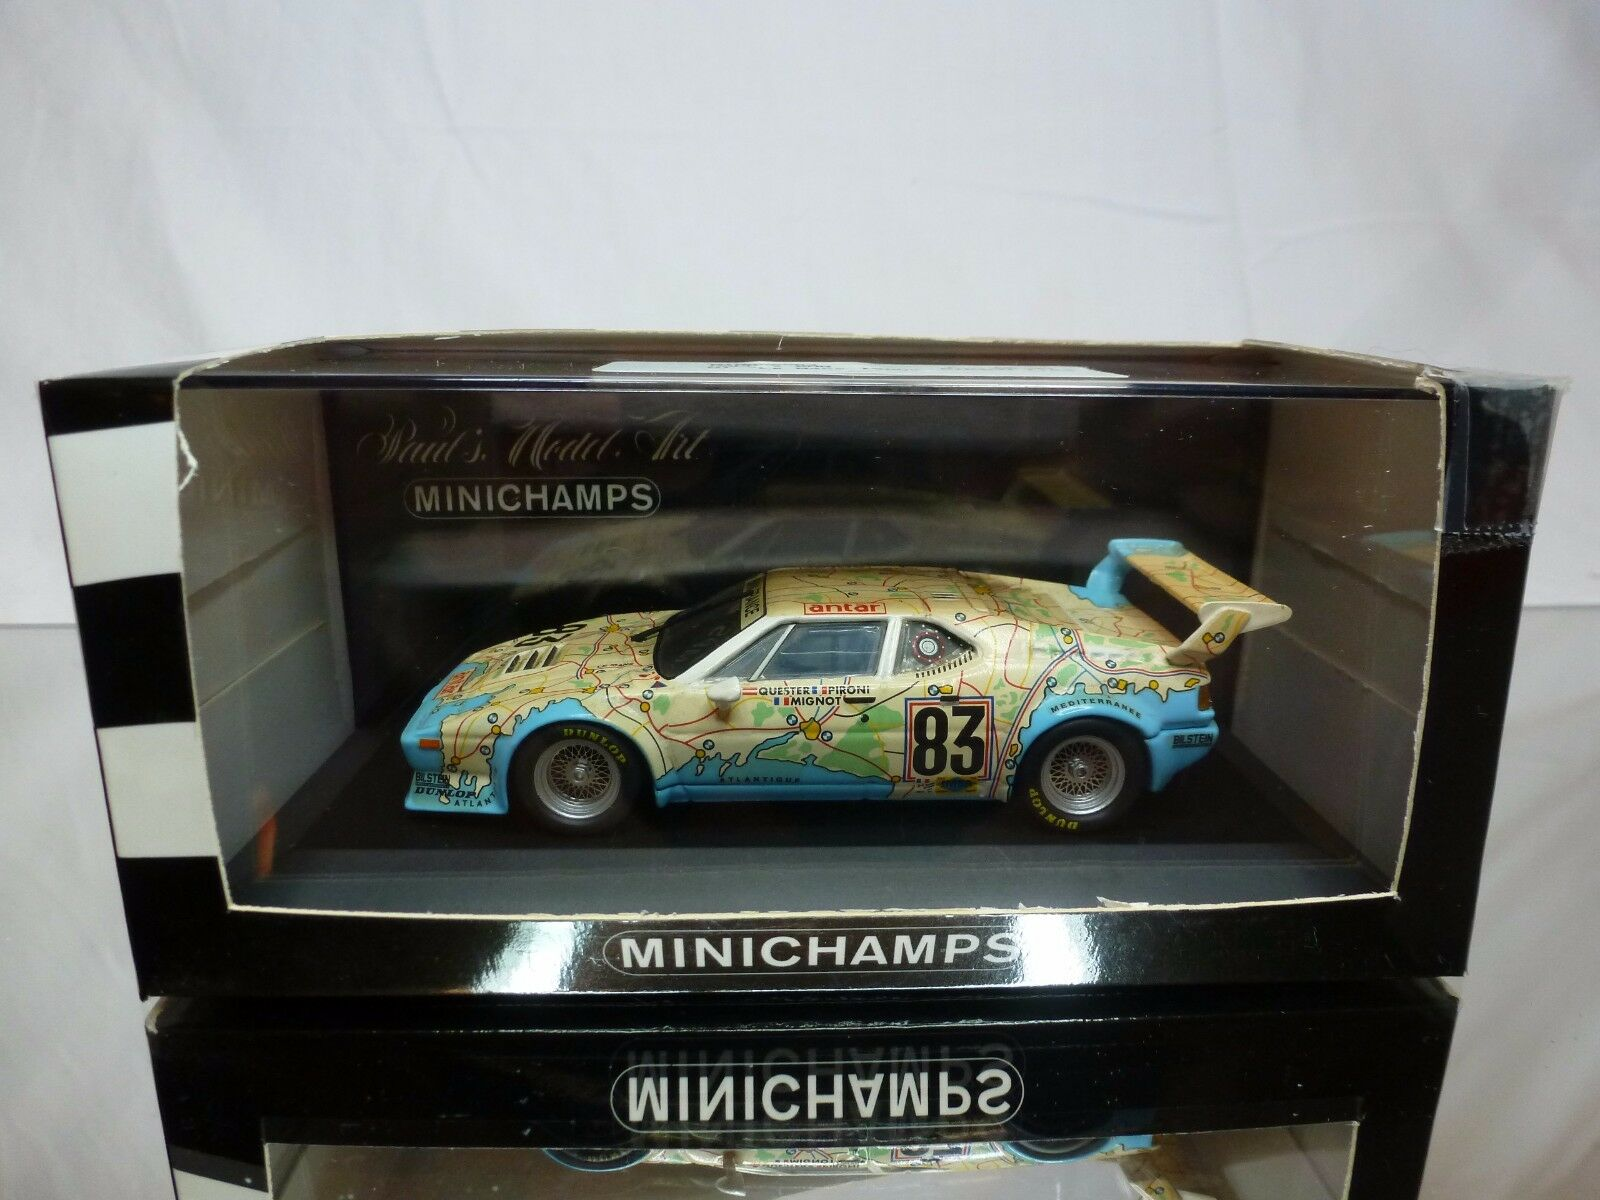 MINICHAMPS BMW M1 LE MANS 1980 PIRONI QUESTER QUESTER QUESTER MIGNOT - ANTAR 1 43 - GOOD IN BOX 7b28bb